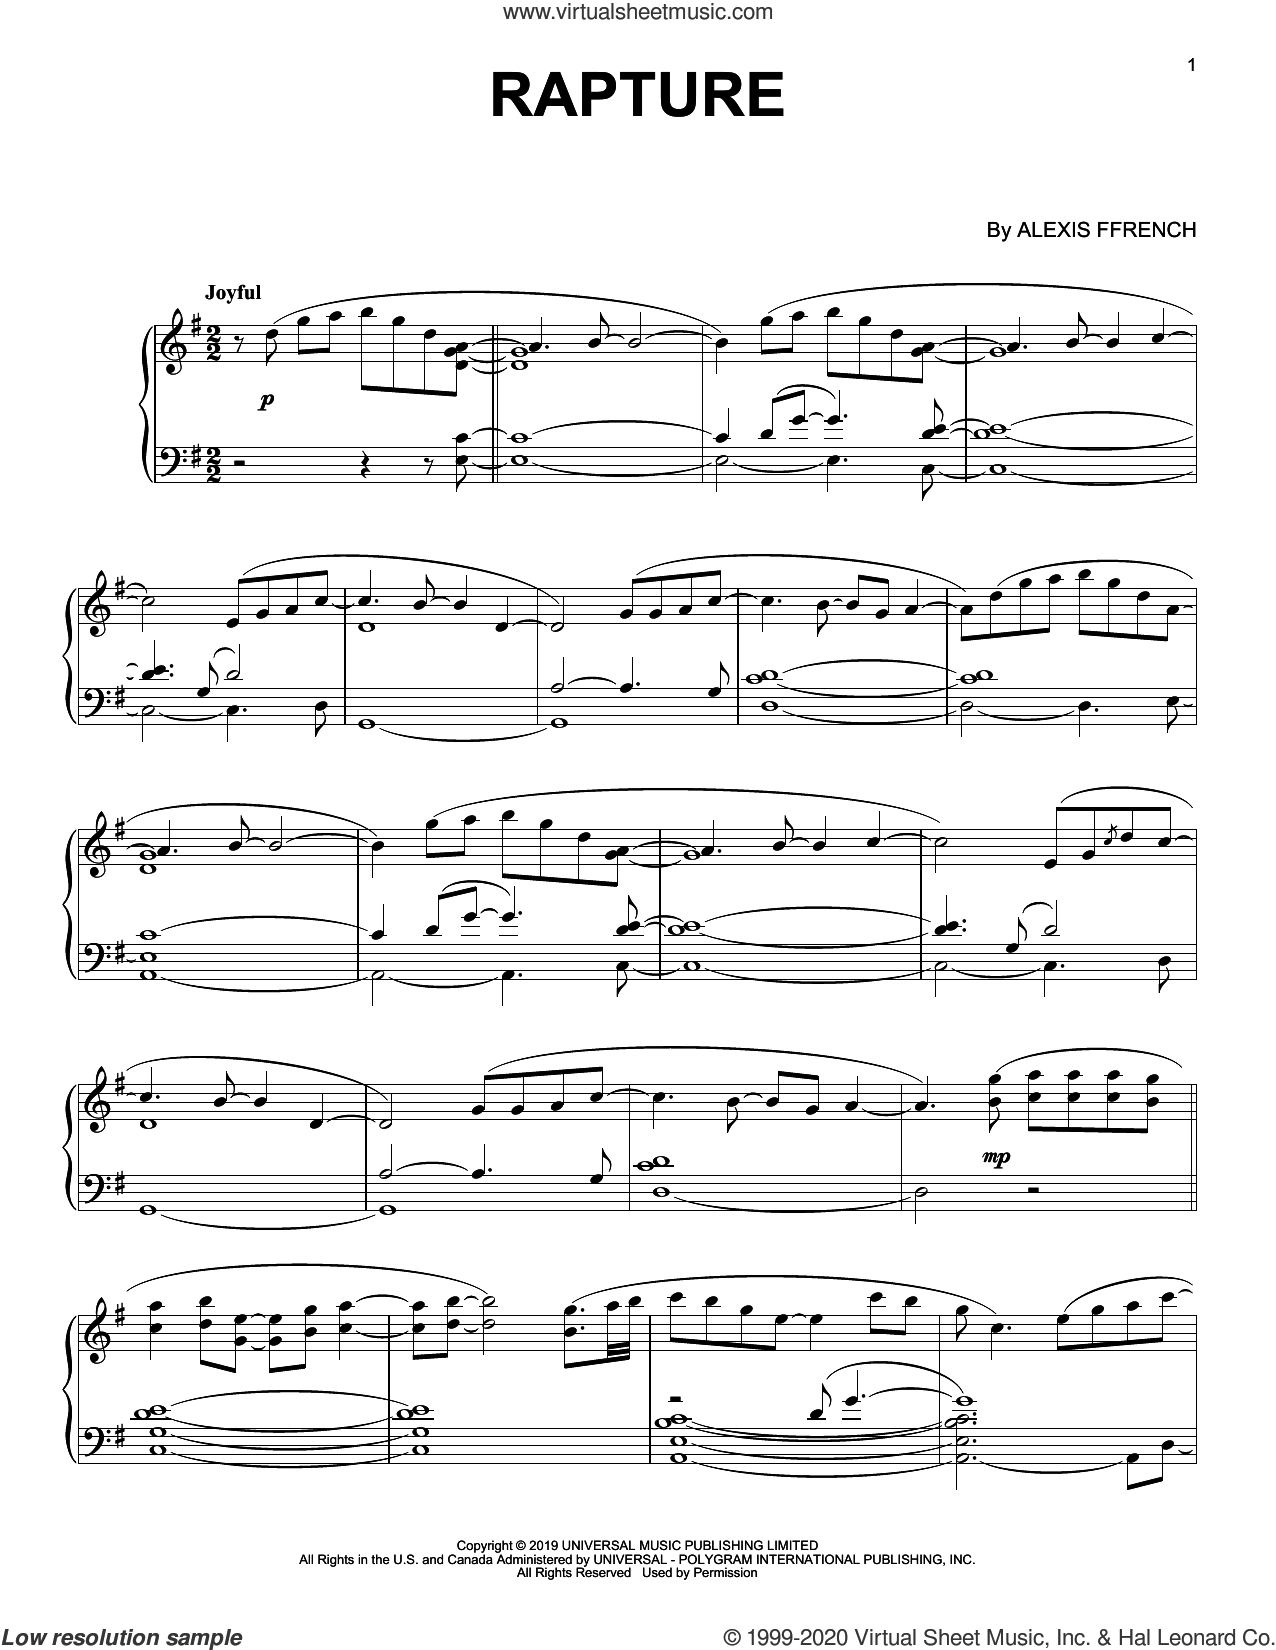 Rapture sheet music for piano solo by Alexis Ffrench, intermediate skill level